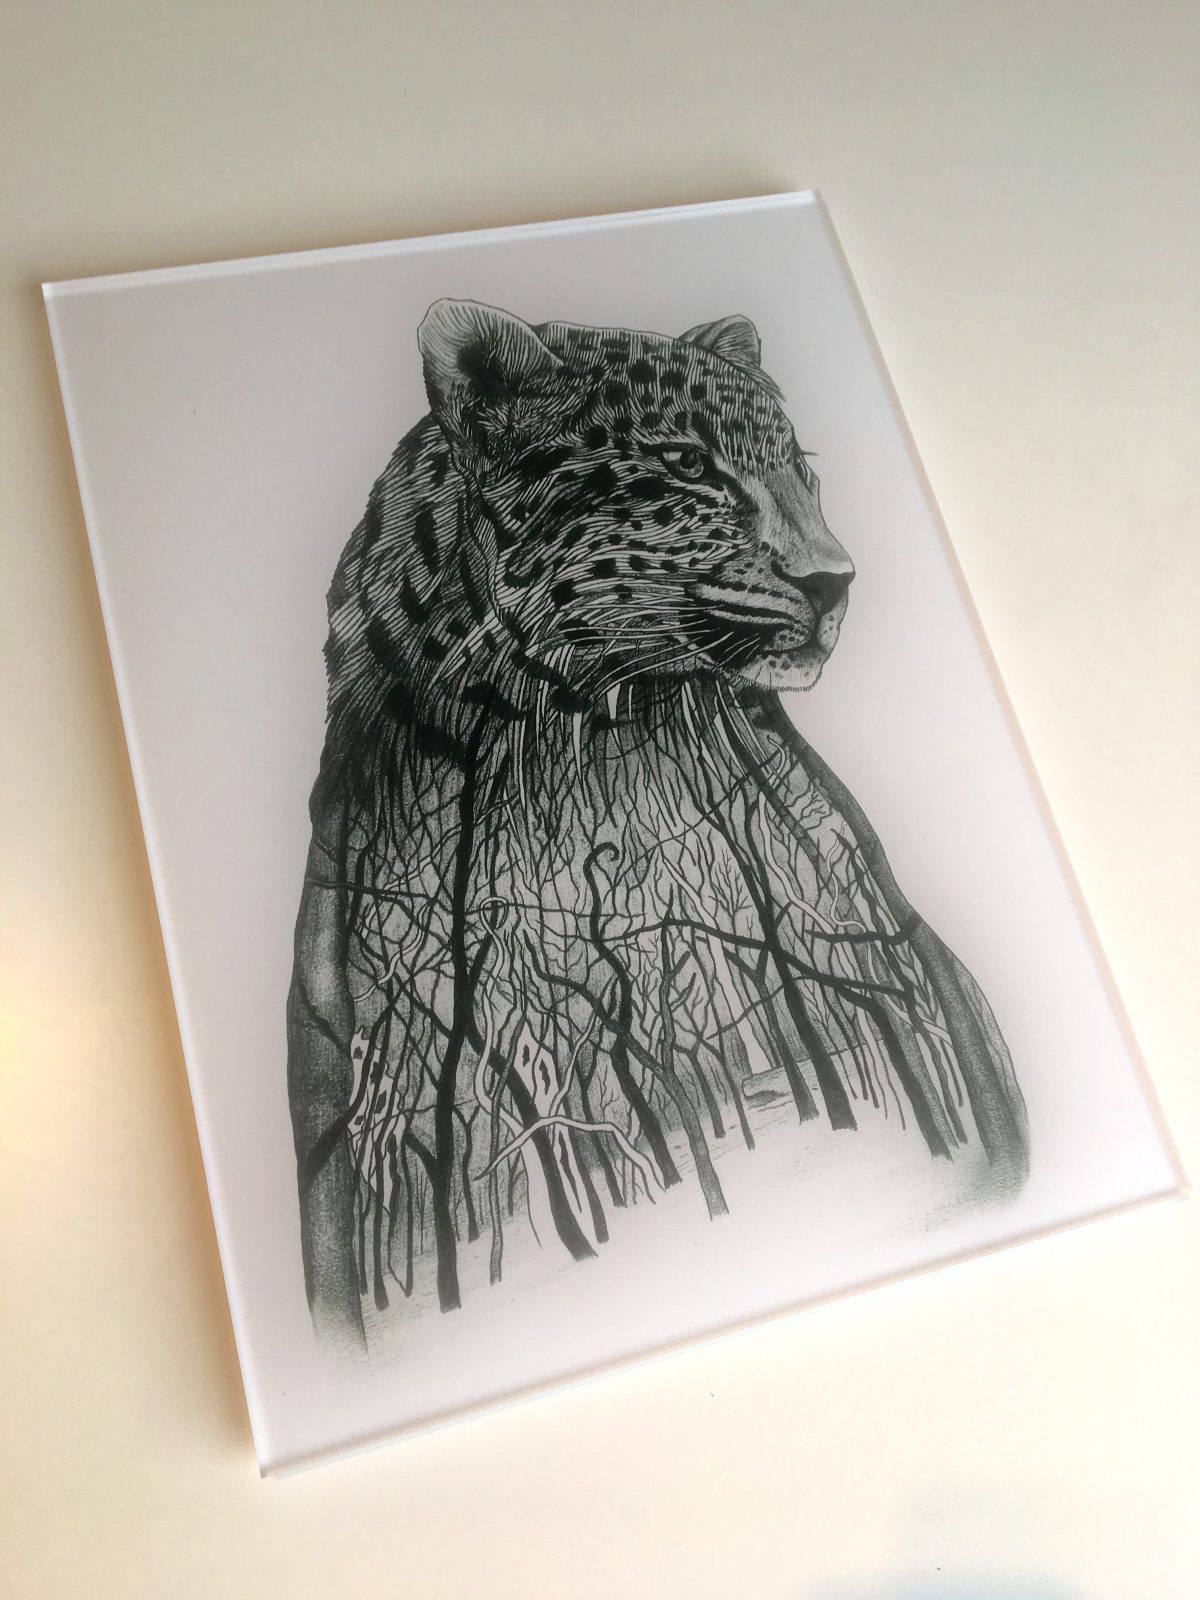 Amur Leopard drawing - limited edition print on acrylic glass | 30 x 40 cm | Edition of 3